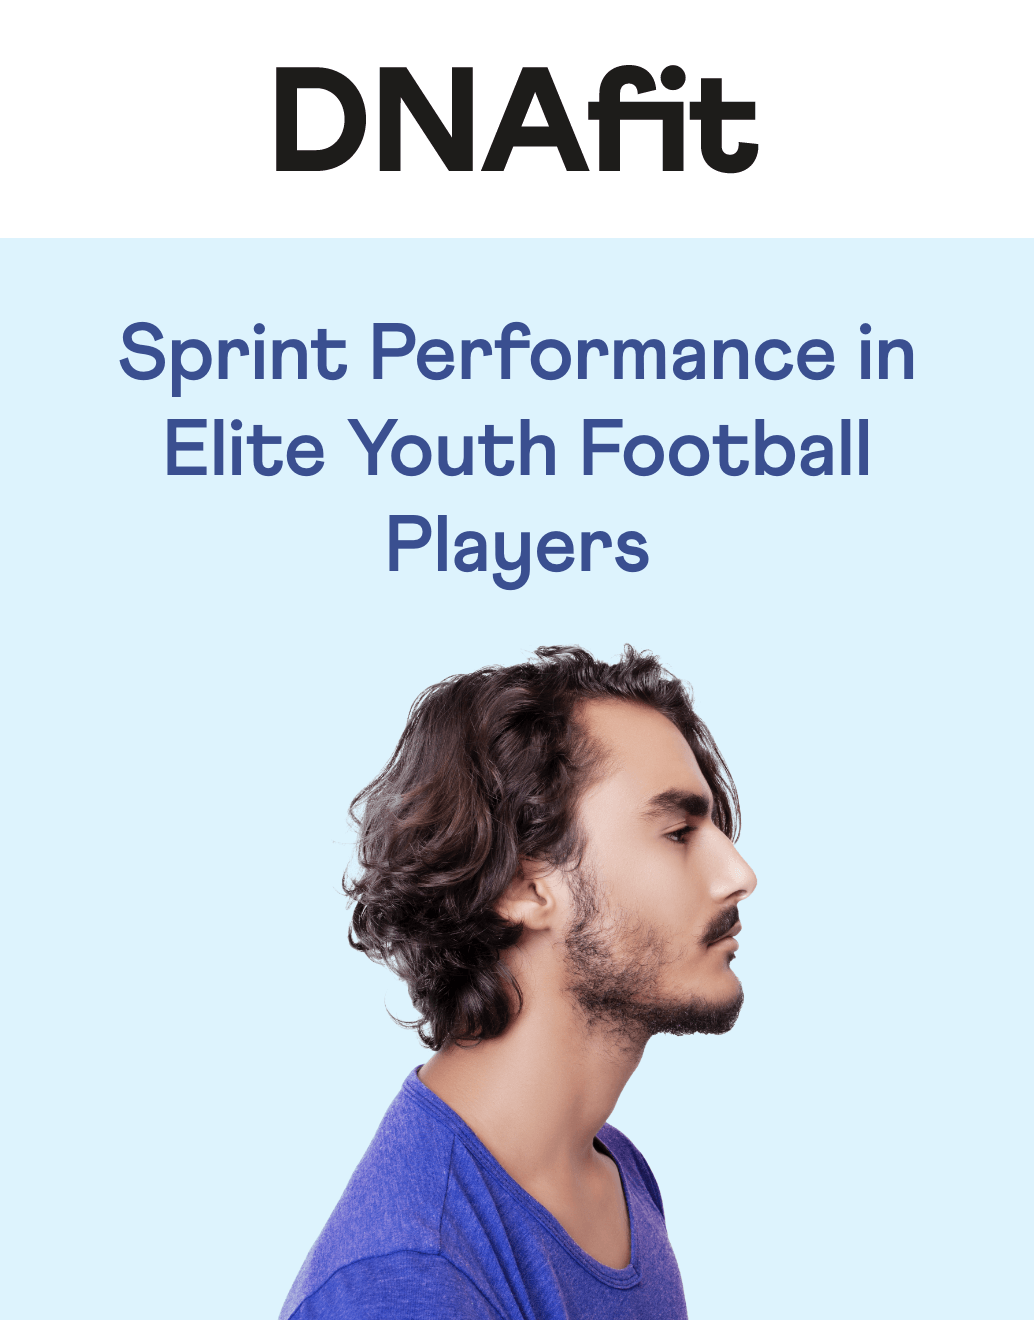 A Genome-Wide Association Study of Sprint Performance in Elite Youth Football Players